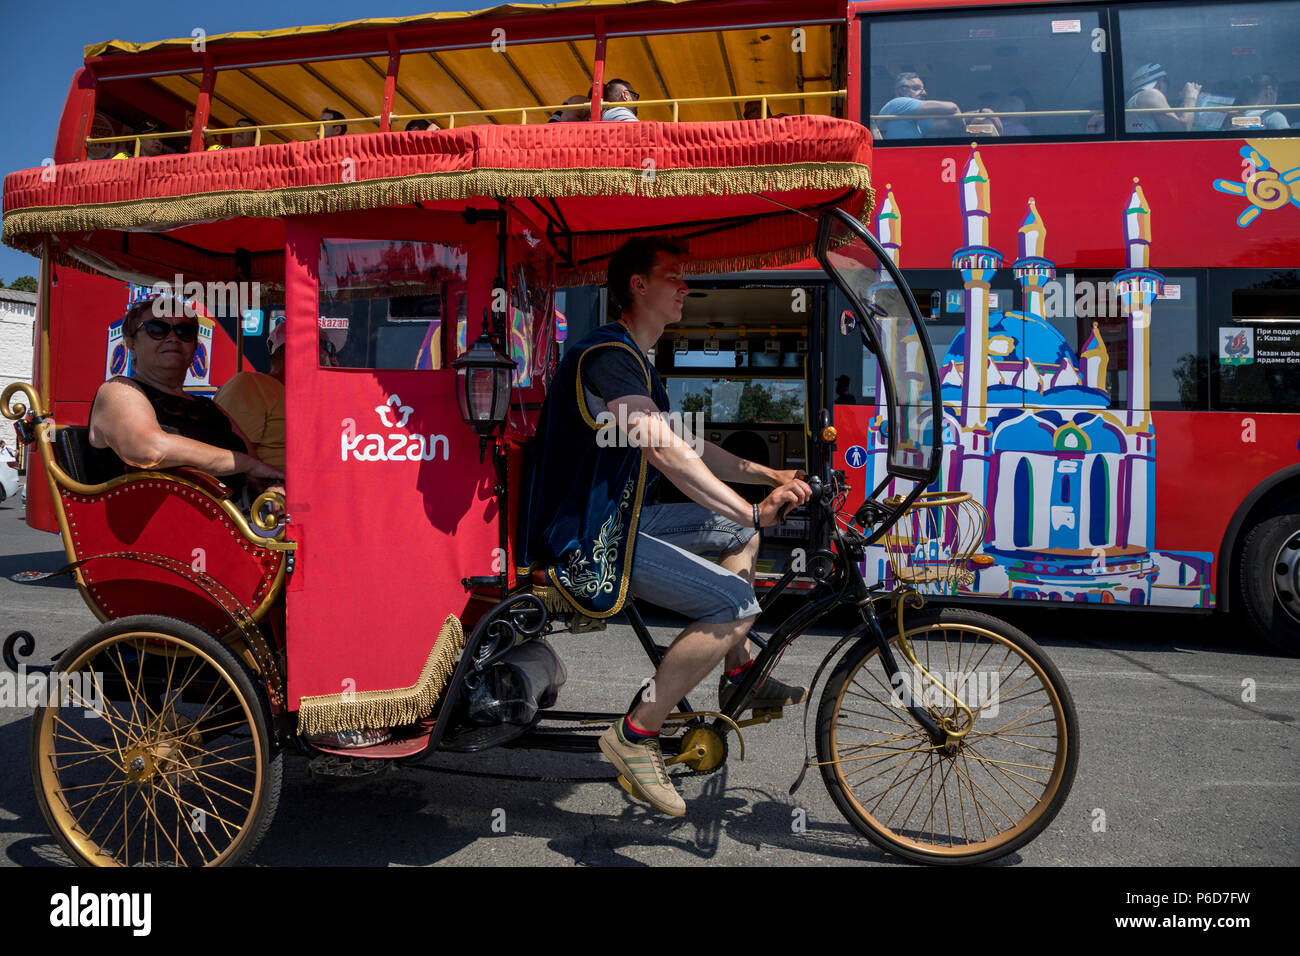 Trishaw gets tourists on bakground of the sightseeing bus near the Kremlin in Kazan city, the Republic of Tatarstan, Russia - Stock Image